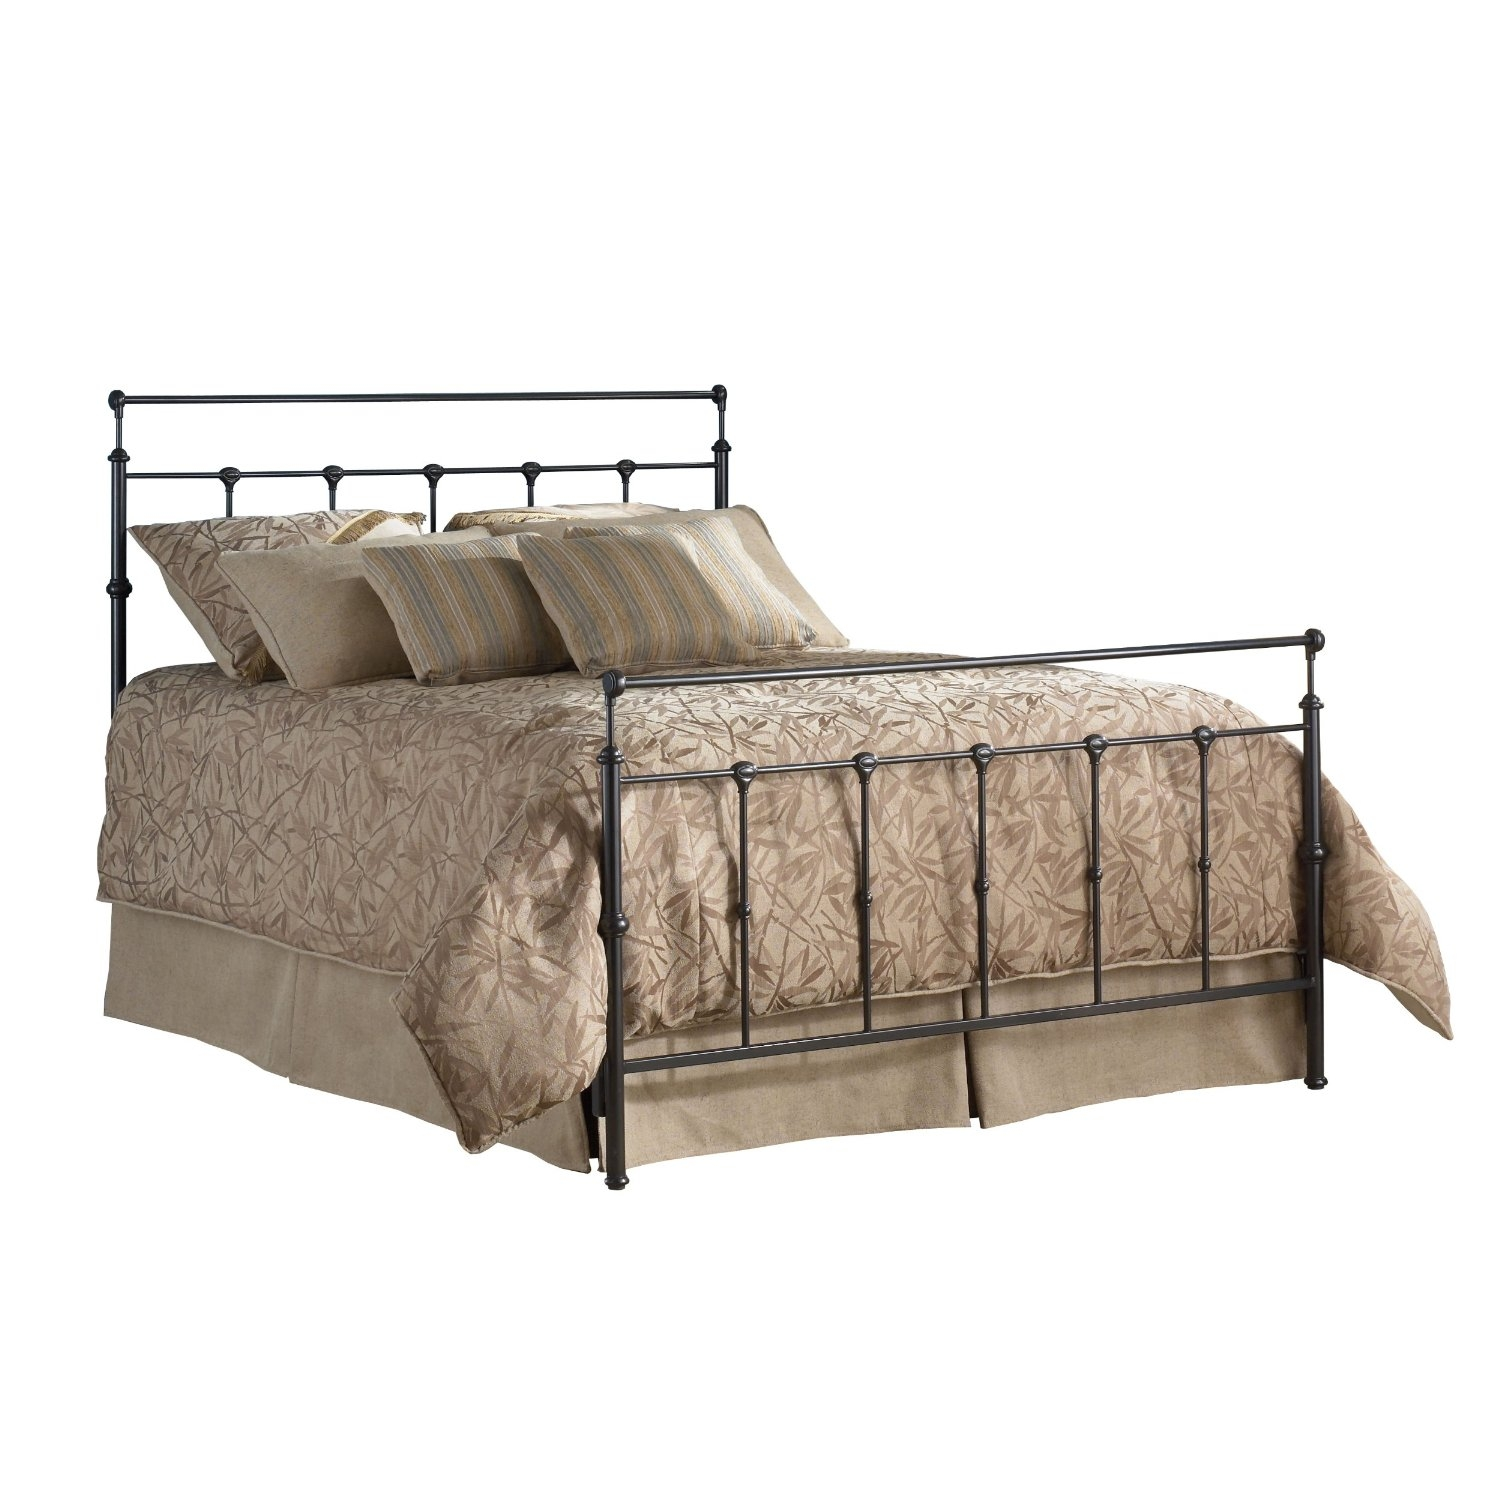 Twin size Ornate Metal Bed in Mahogany Gold Finish | FastFurnishings.com